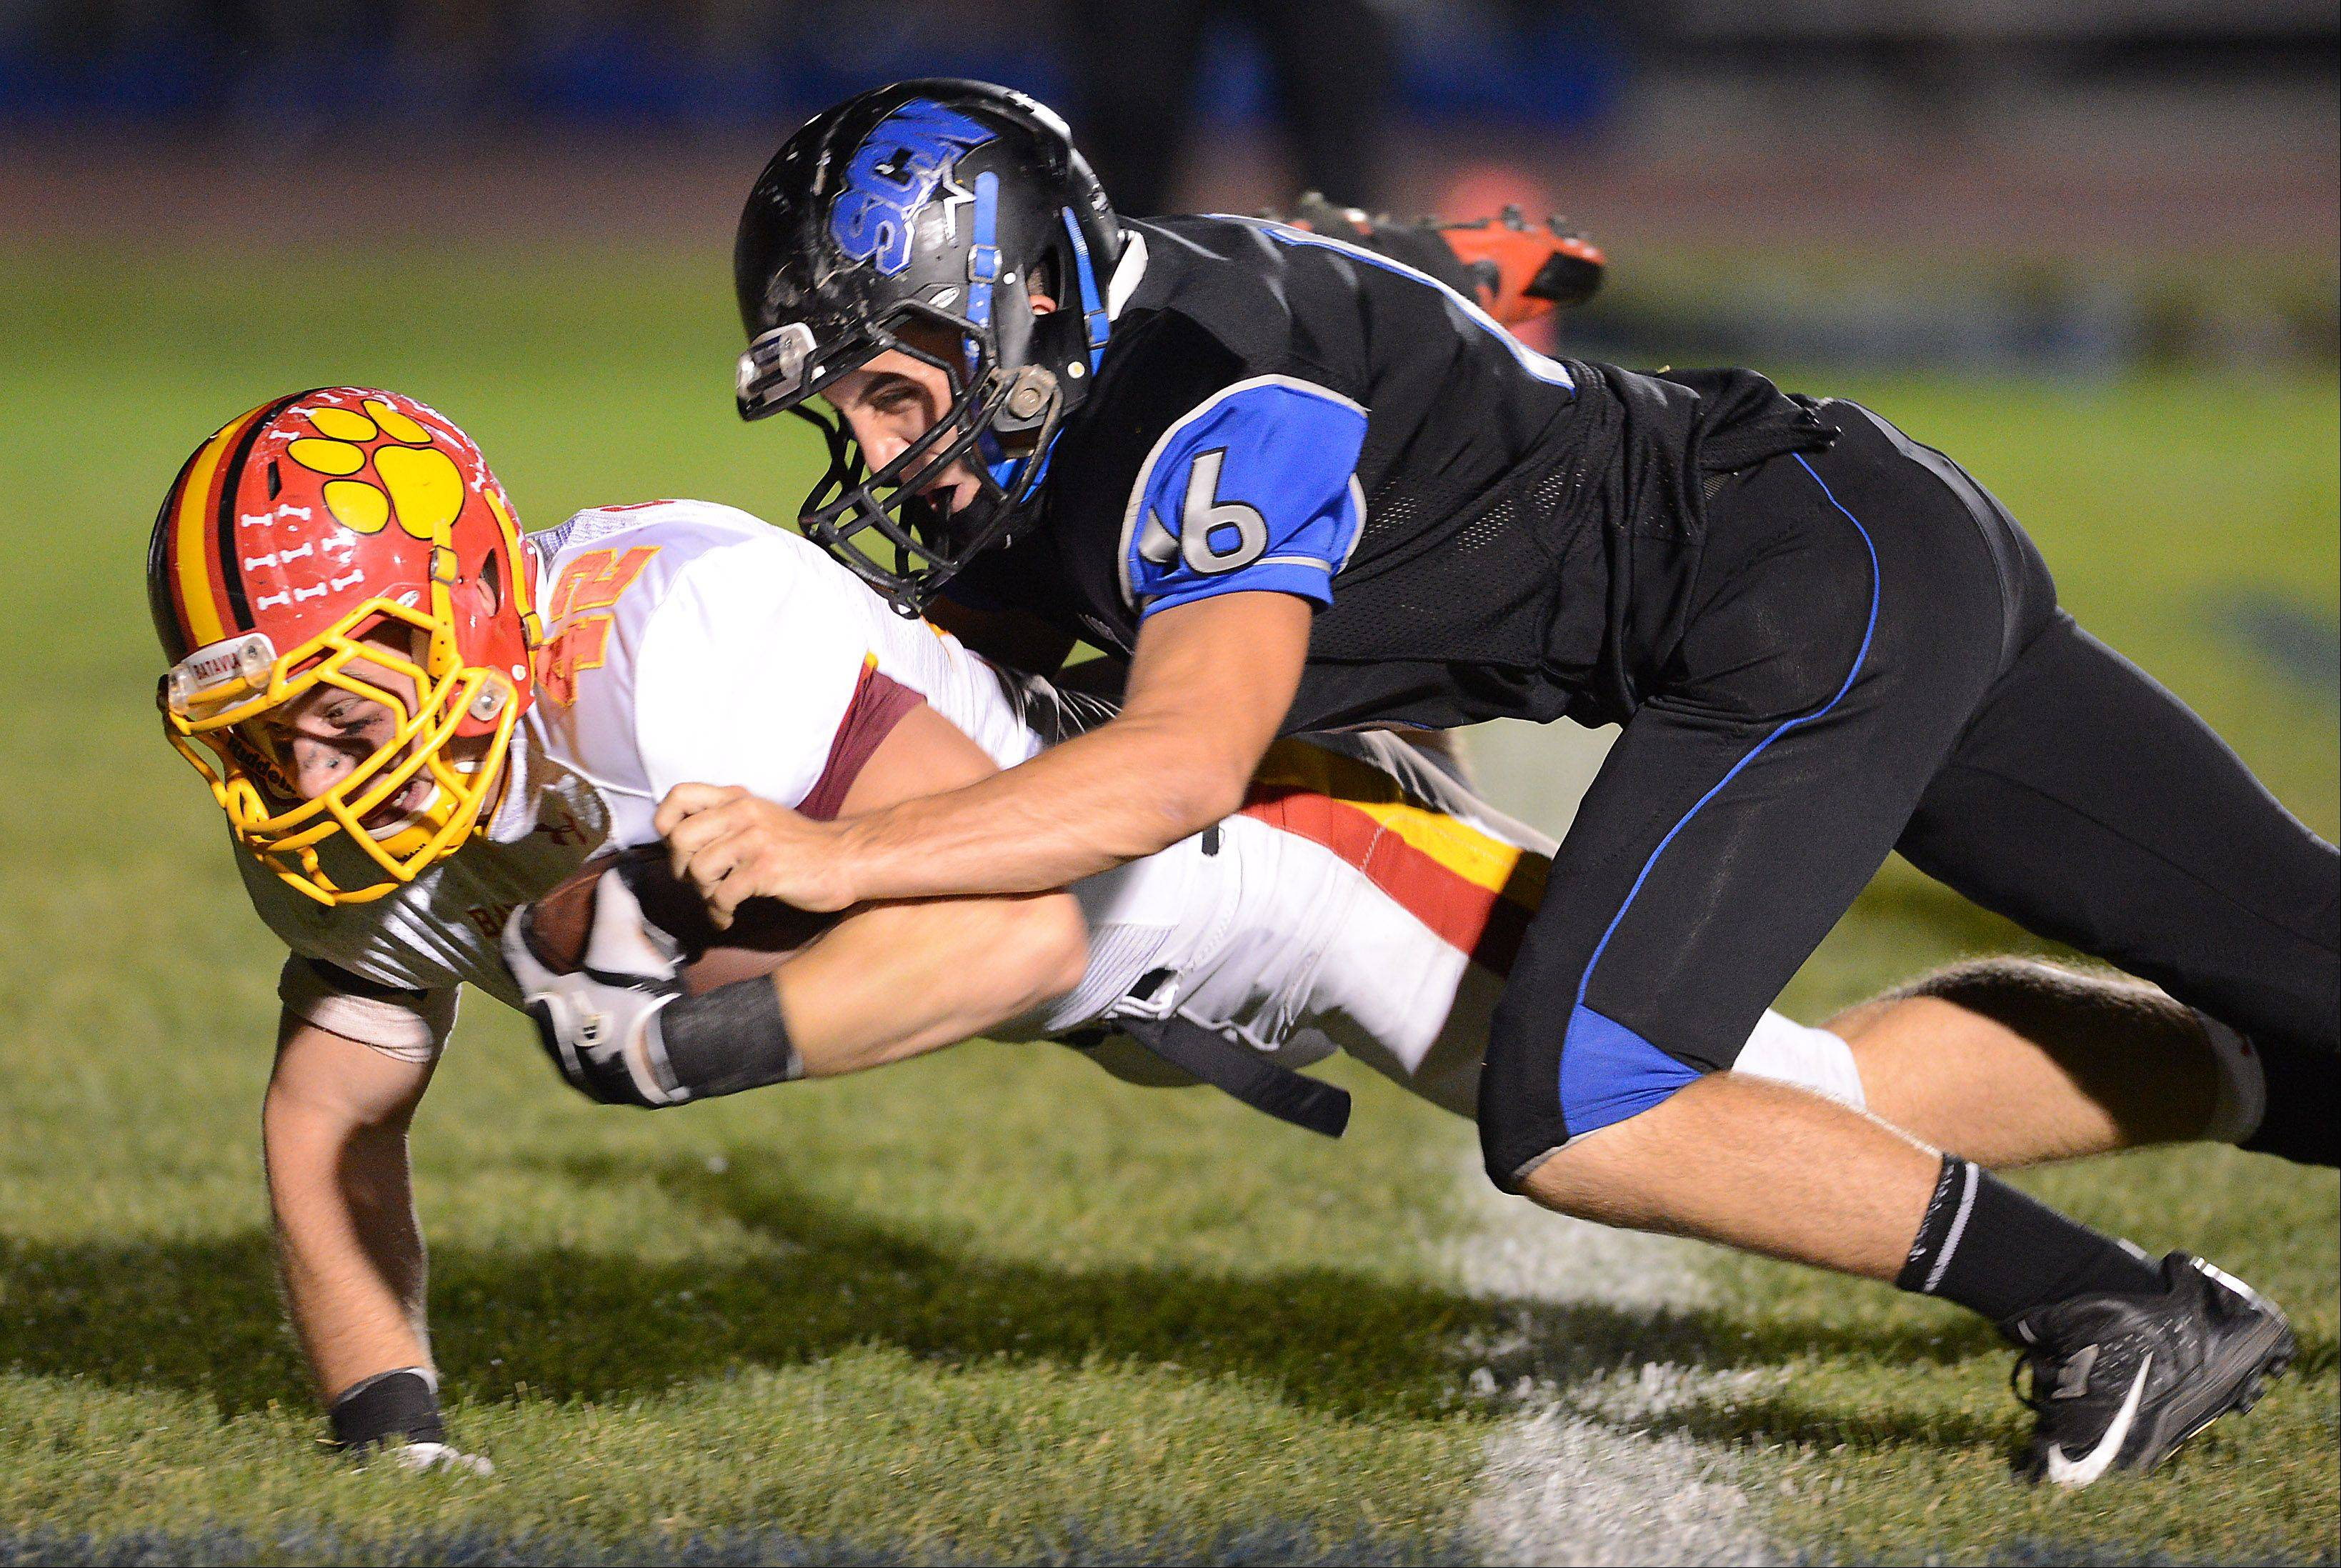 Batavia blows out St. Charles North